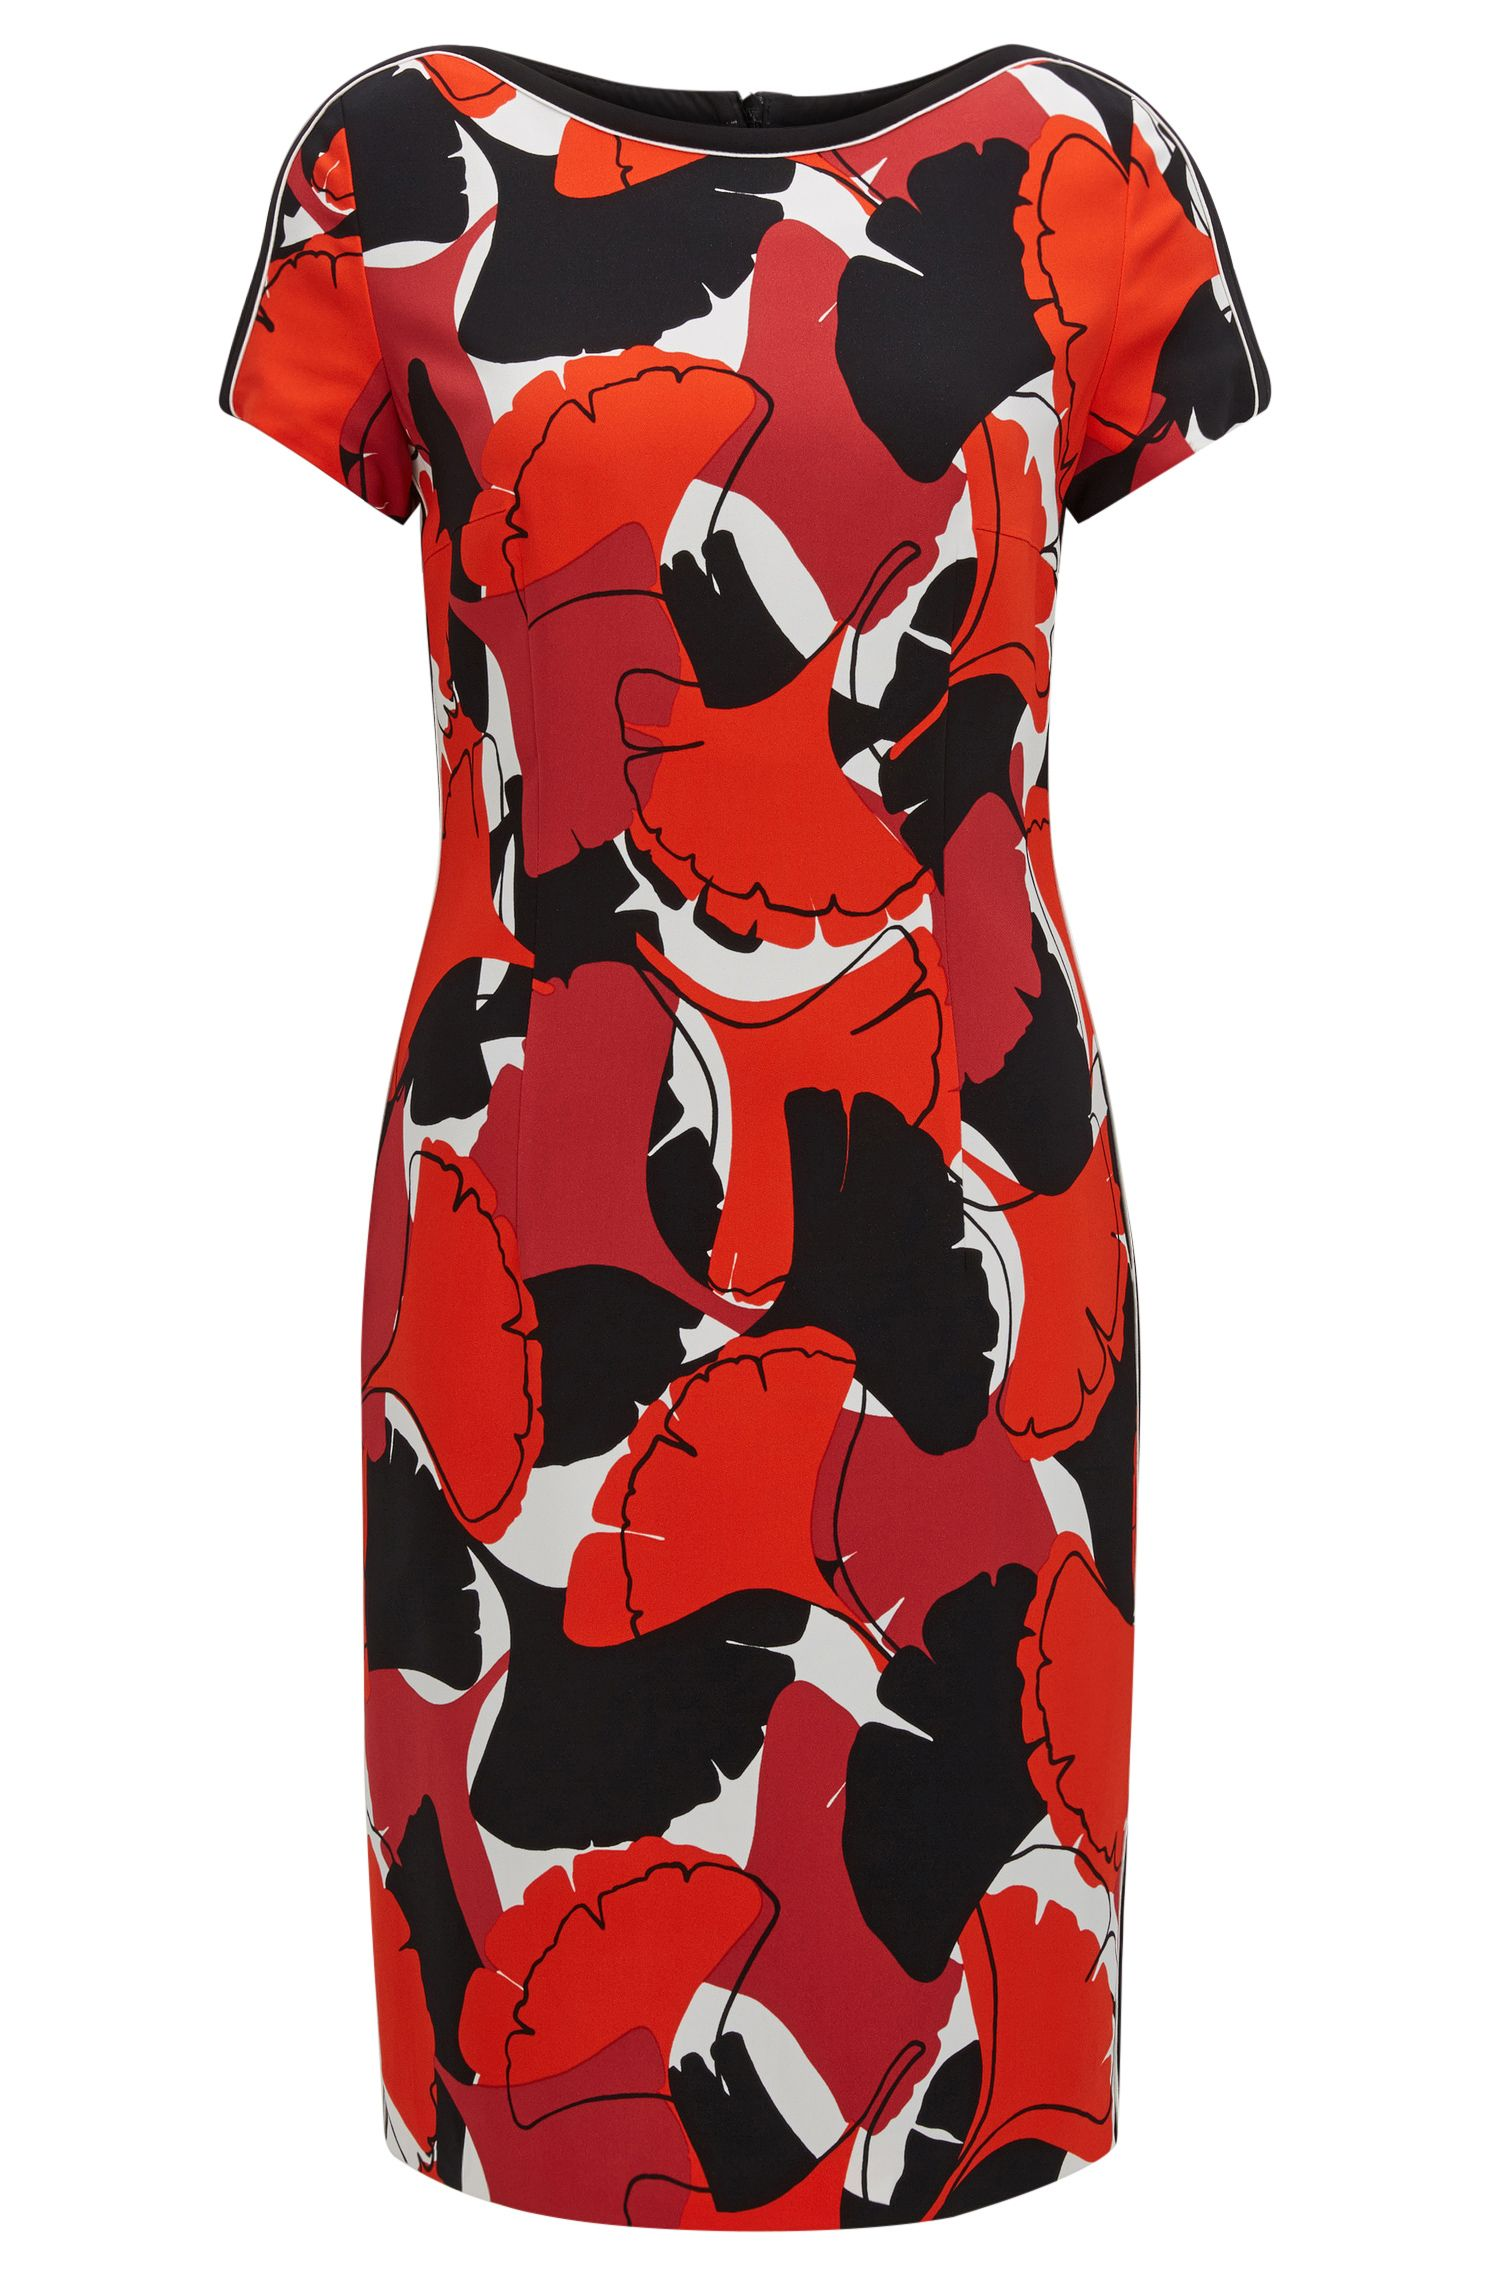 Gingko Print Stretch Viscose Sheath Dress | Dakuja